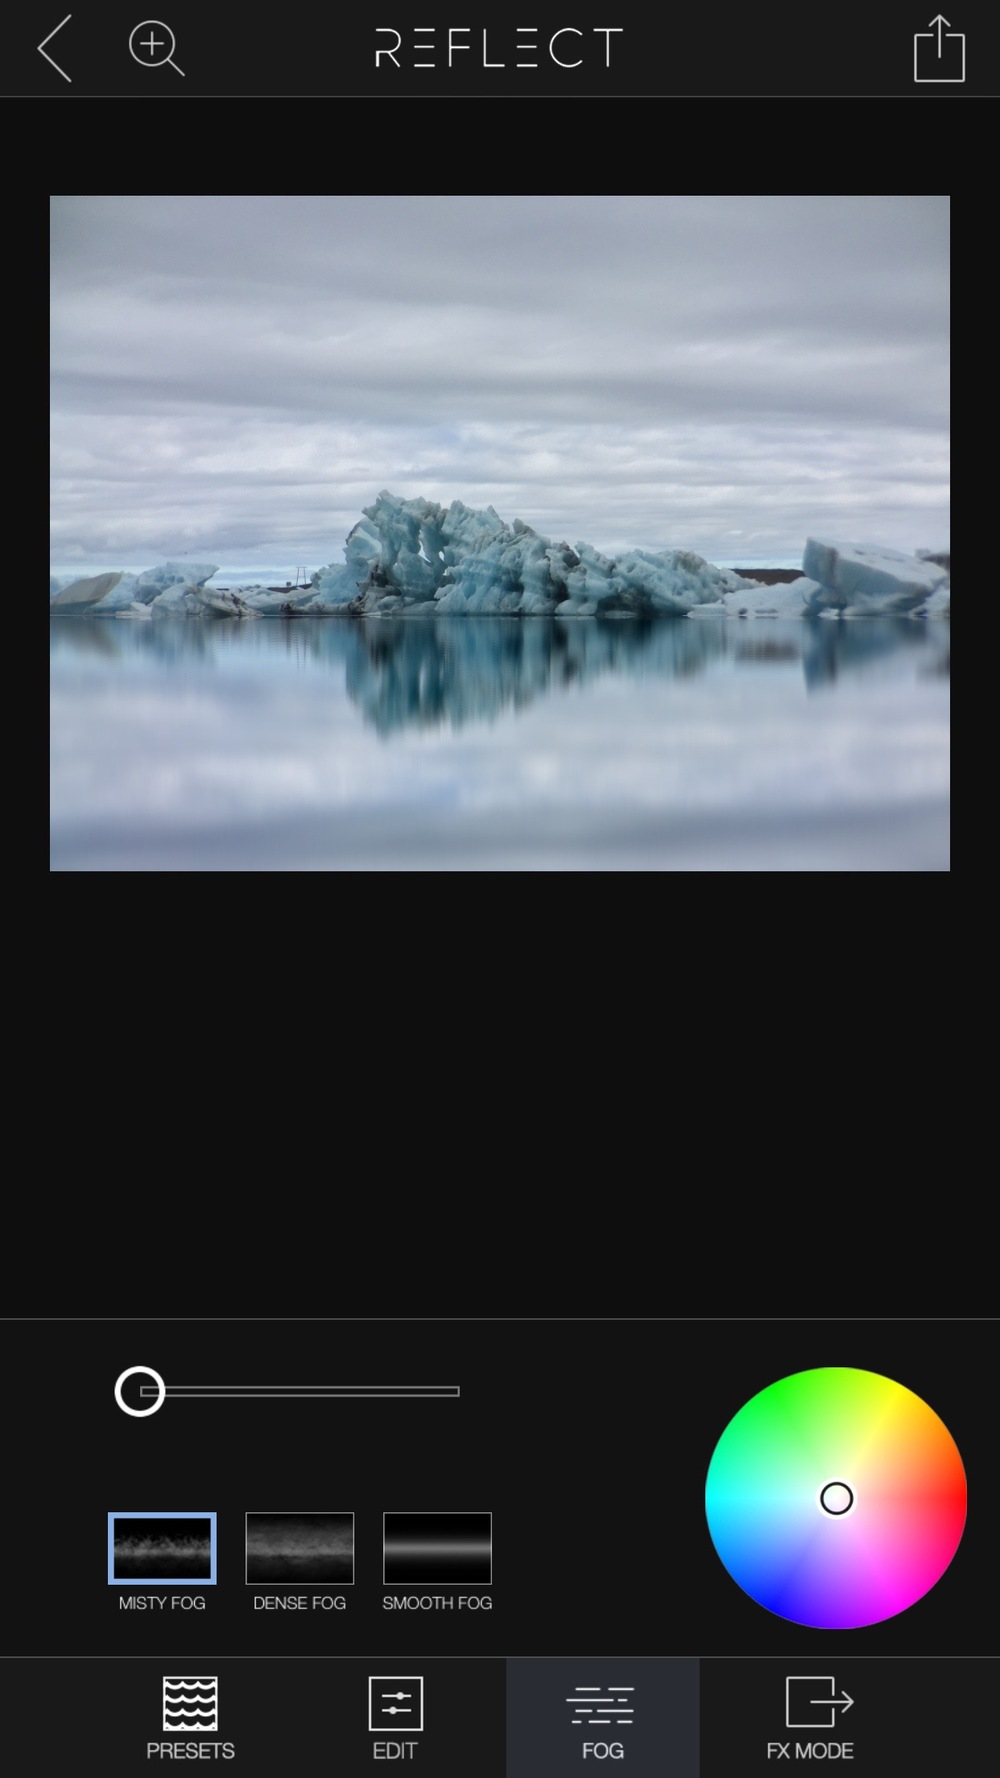 The app offers three different kinds of fog. Use the slider to set the intensity of the fog.